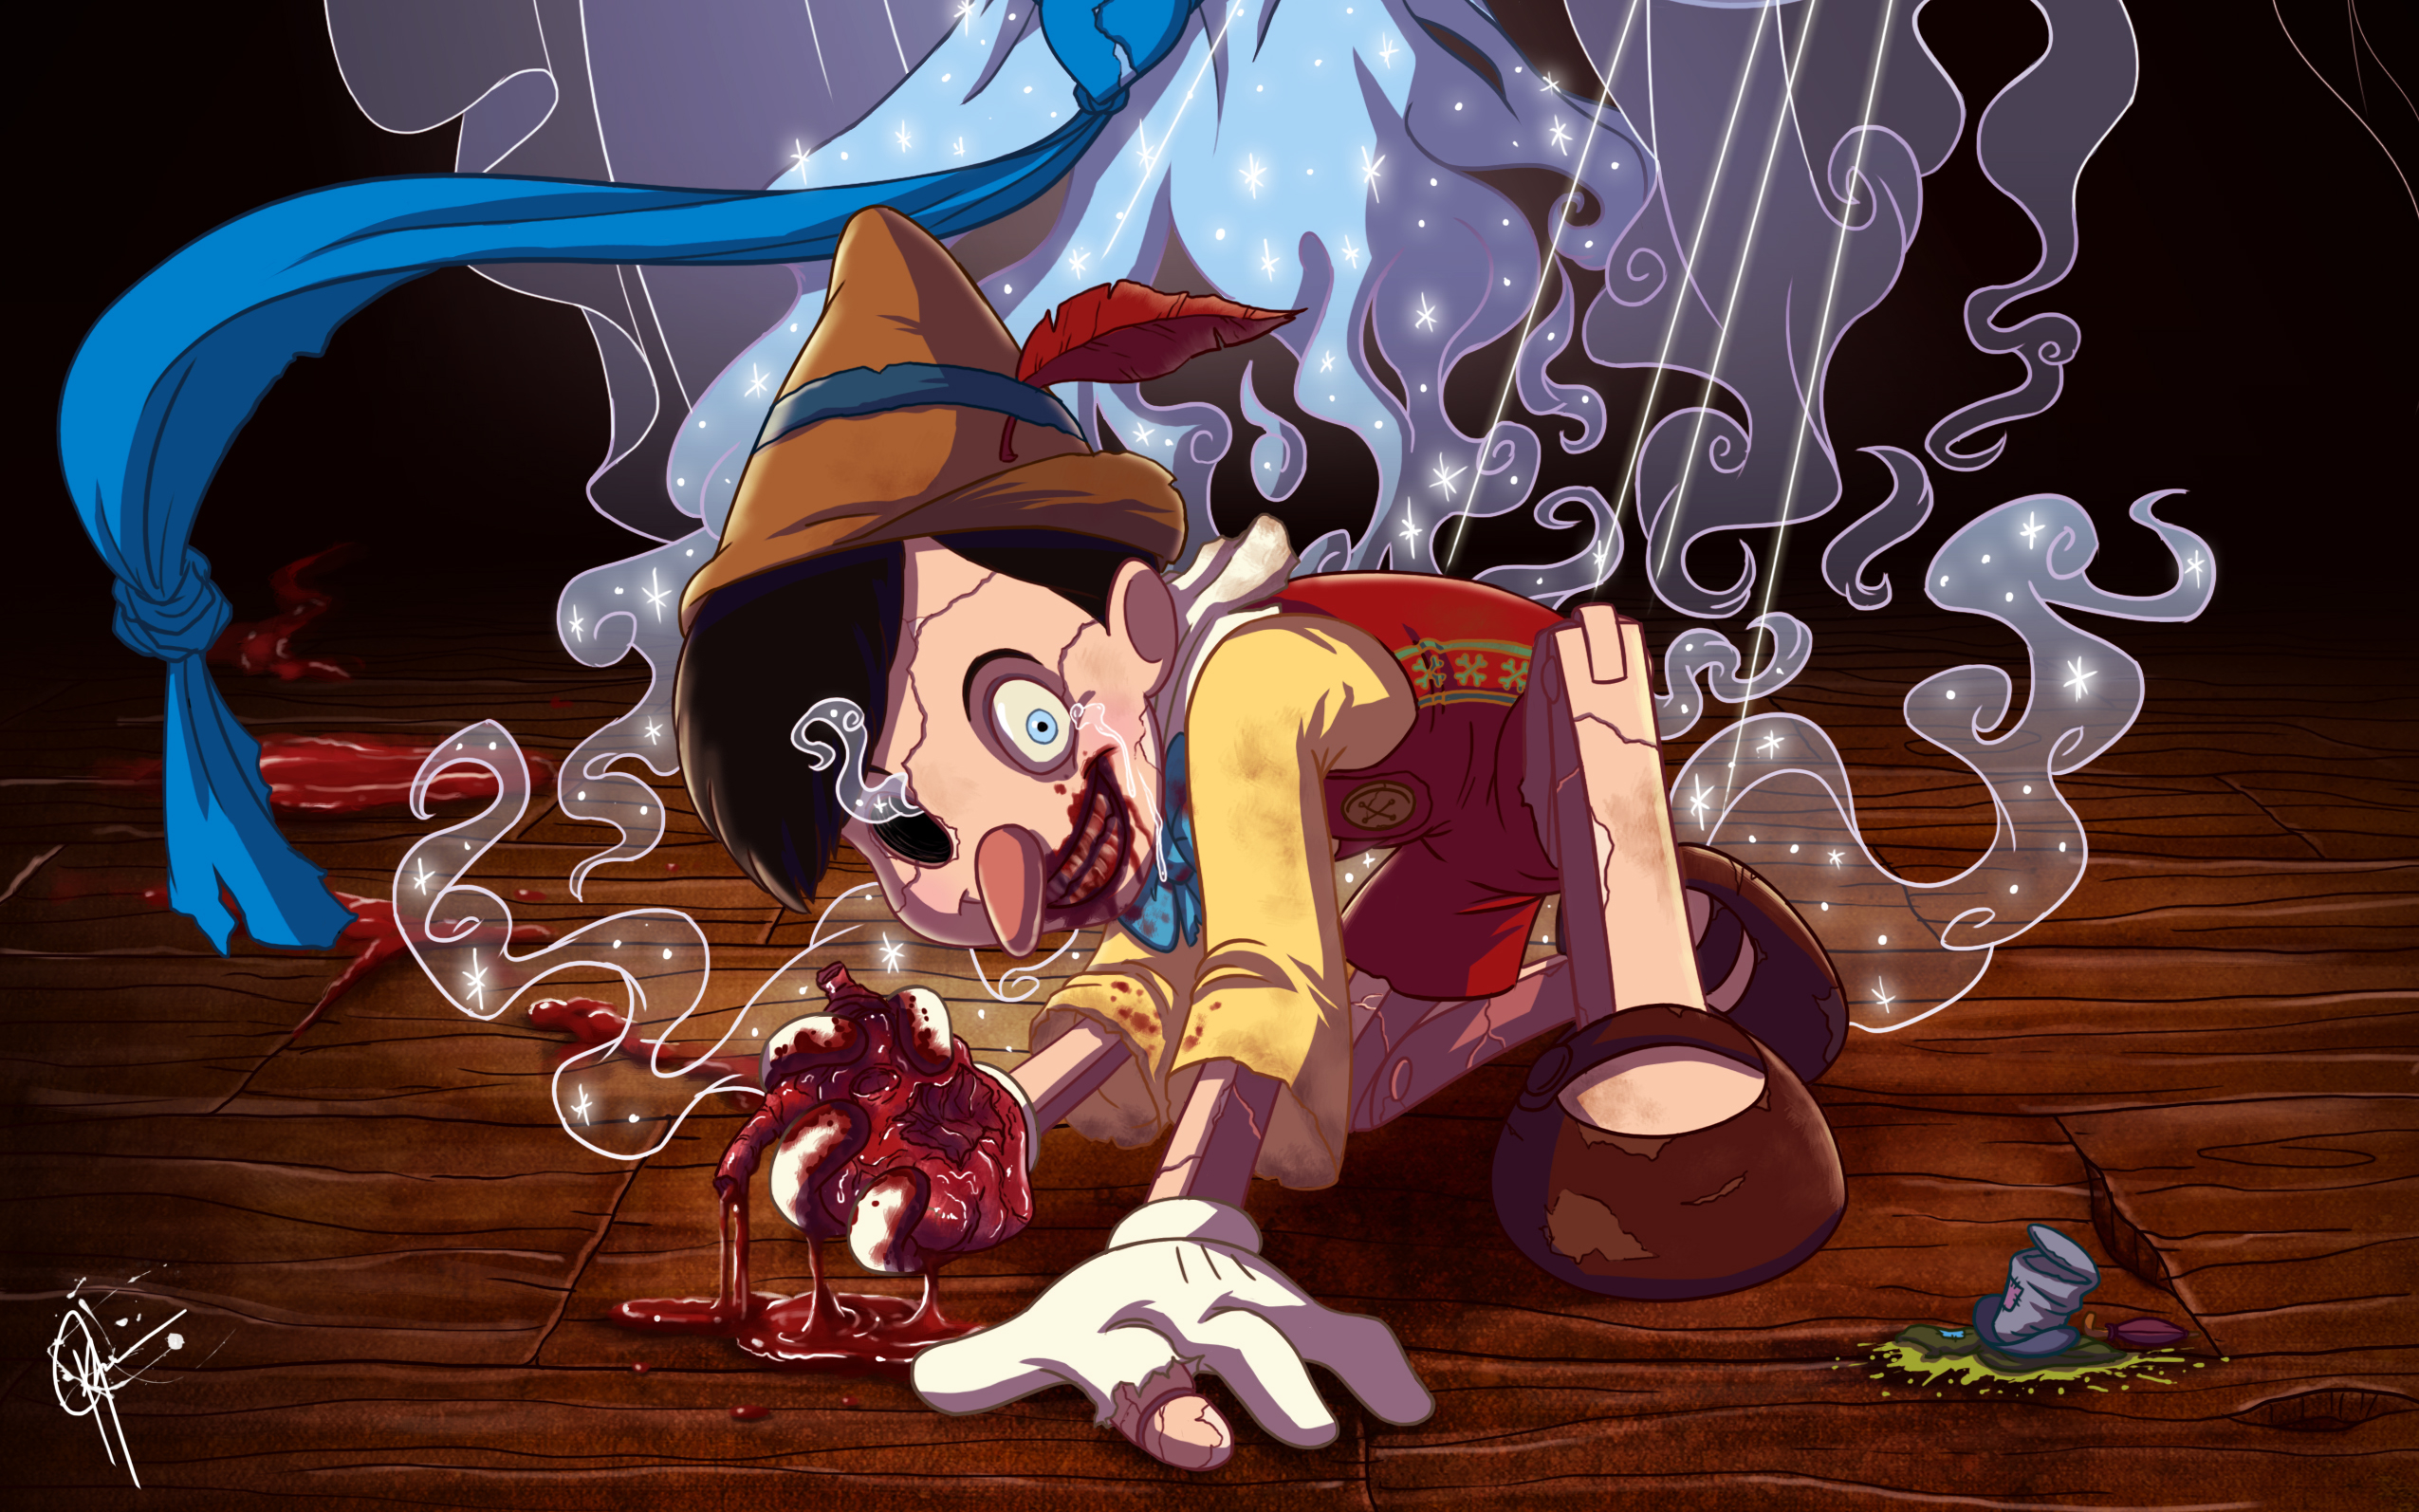 7 pinocchio hd wallpapers backgrounds   wallpaper abyss